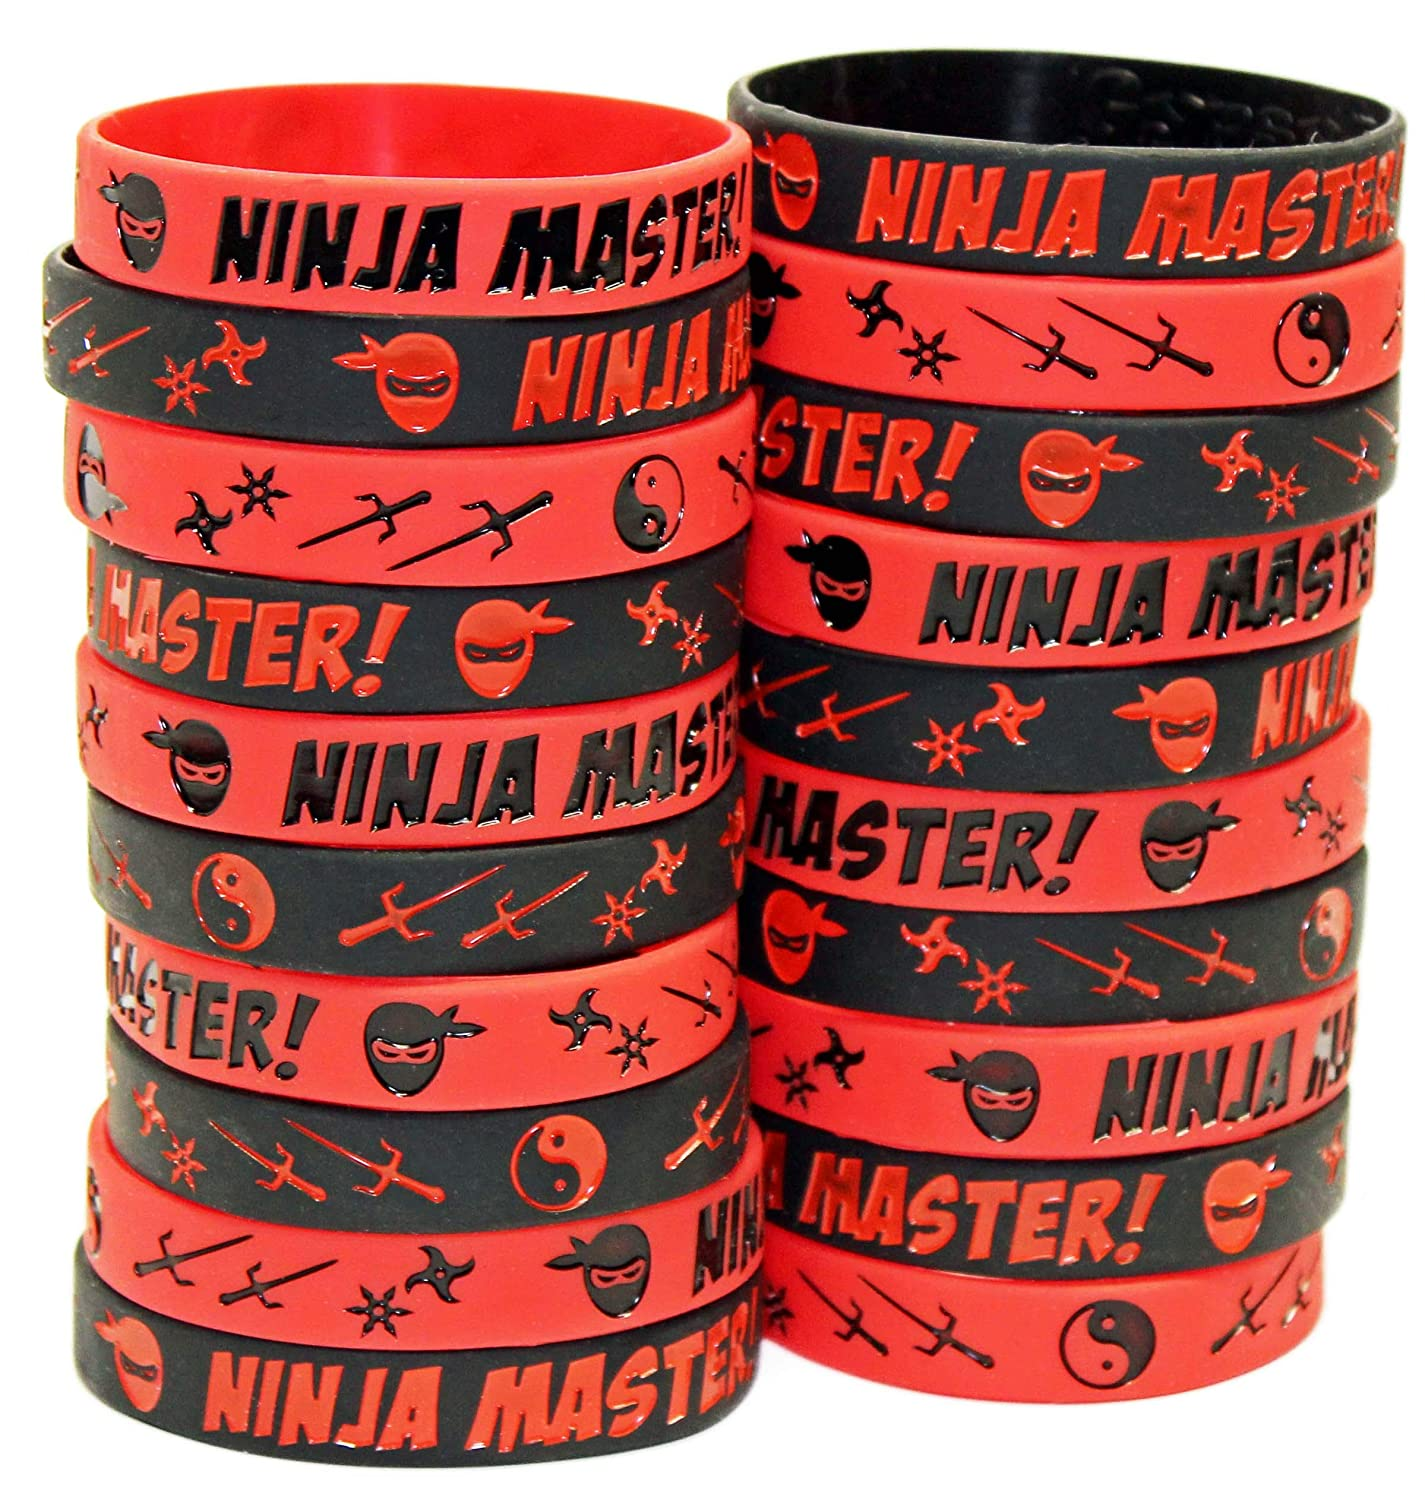 Gypsy Jade's Ninja Master Silicone Wristbands - Ninja Party Favors - Perfect for Ninja Warrior Birthday Party Theme! (20 Solid Color Bands)